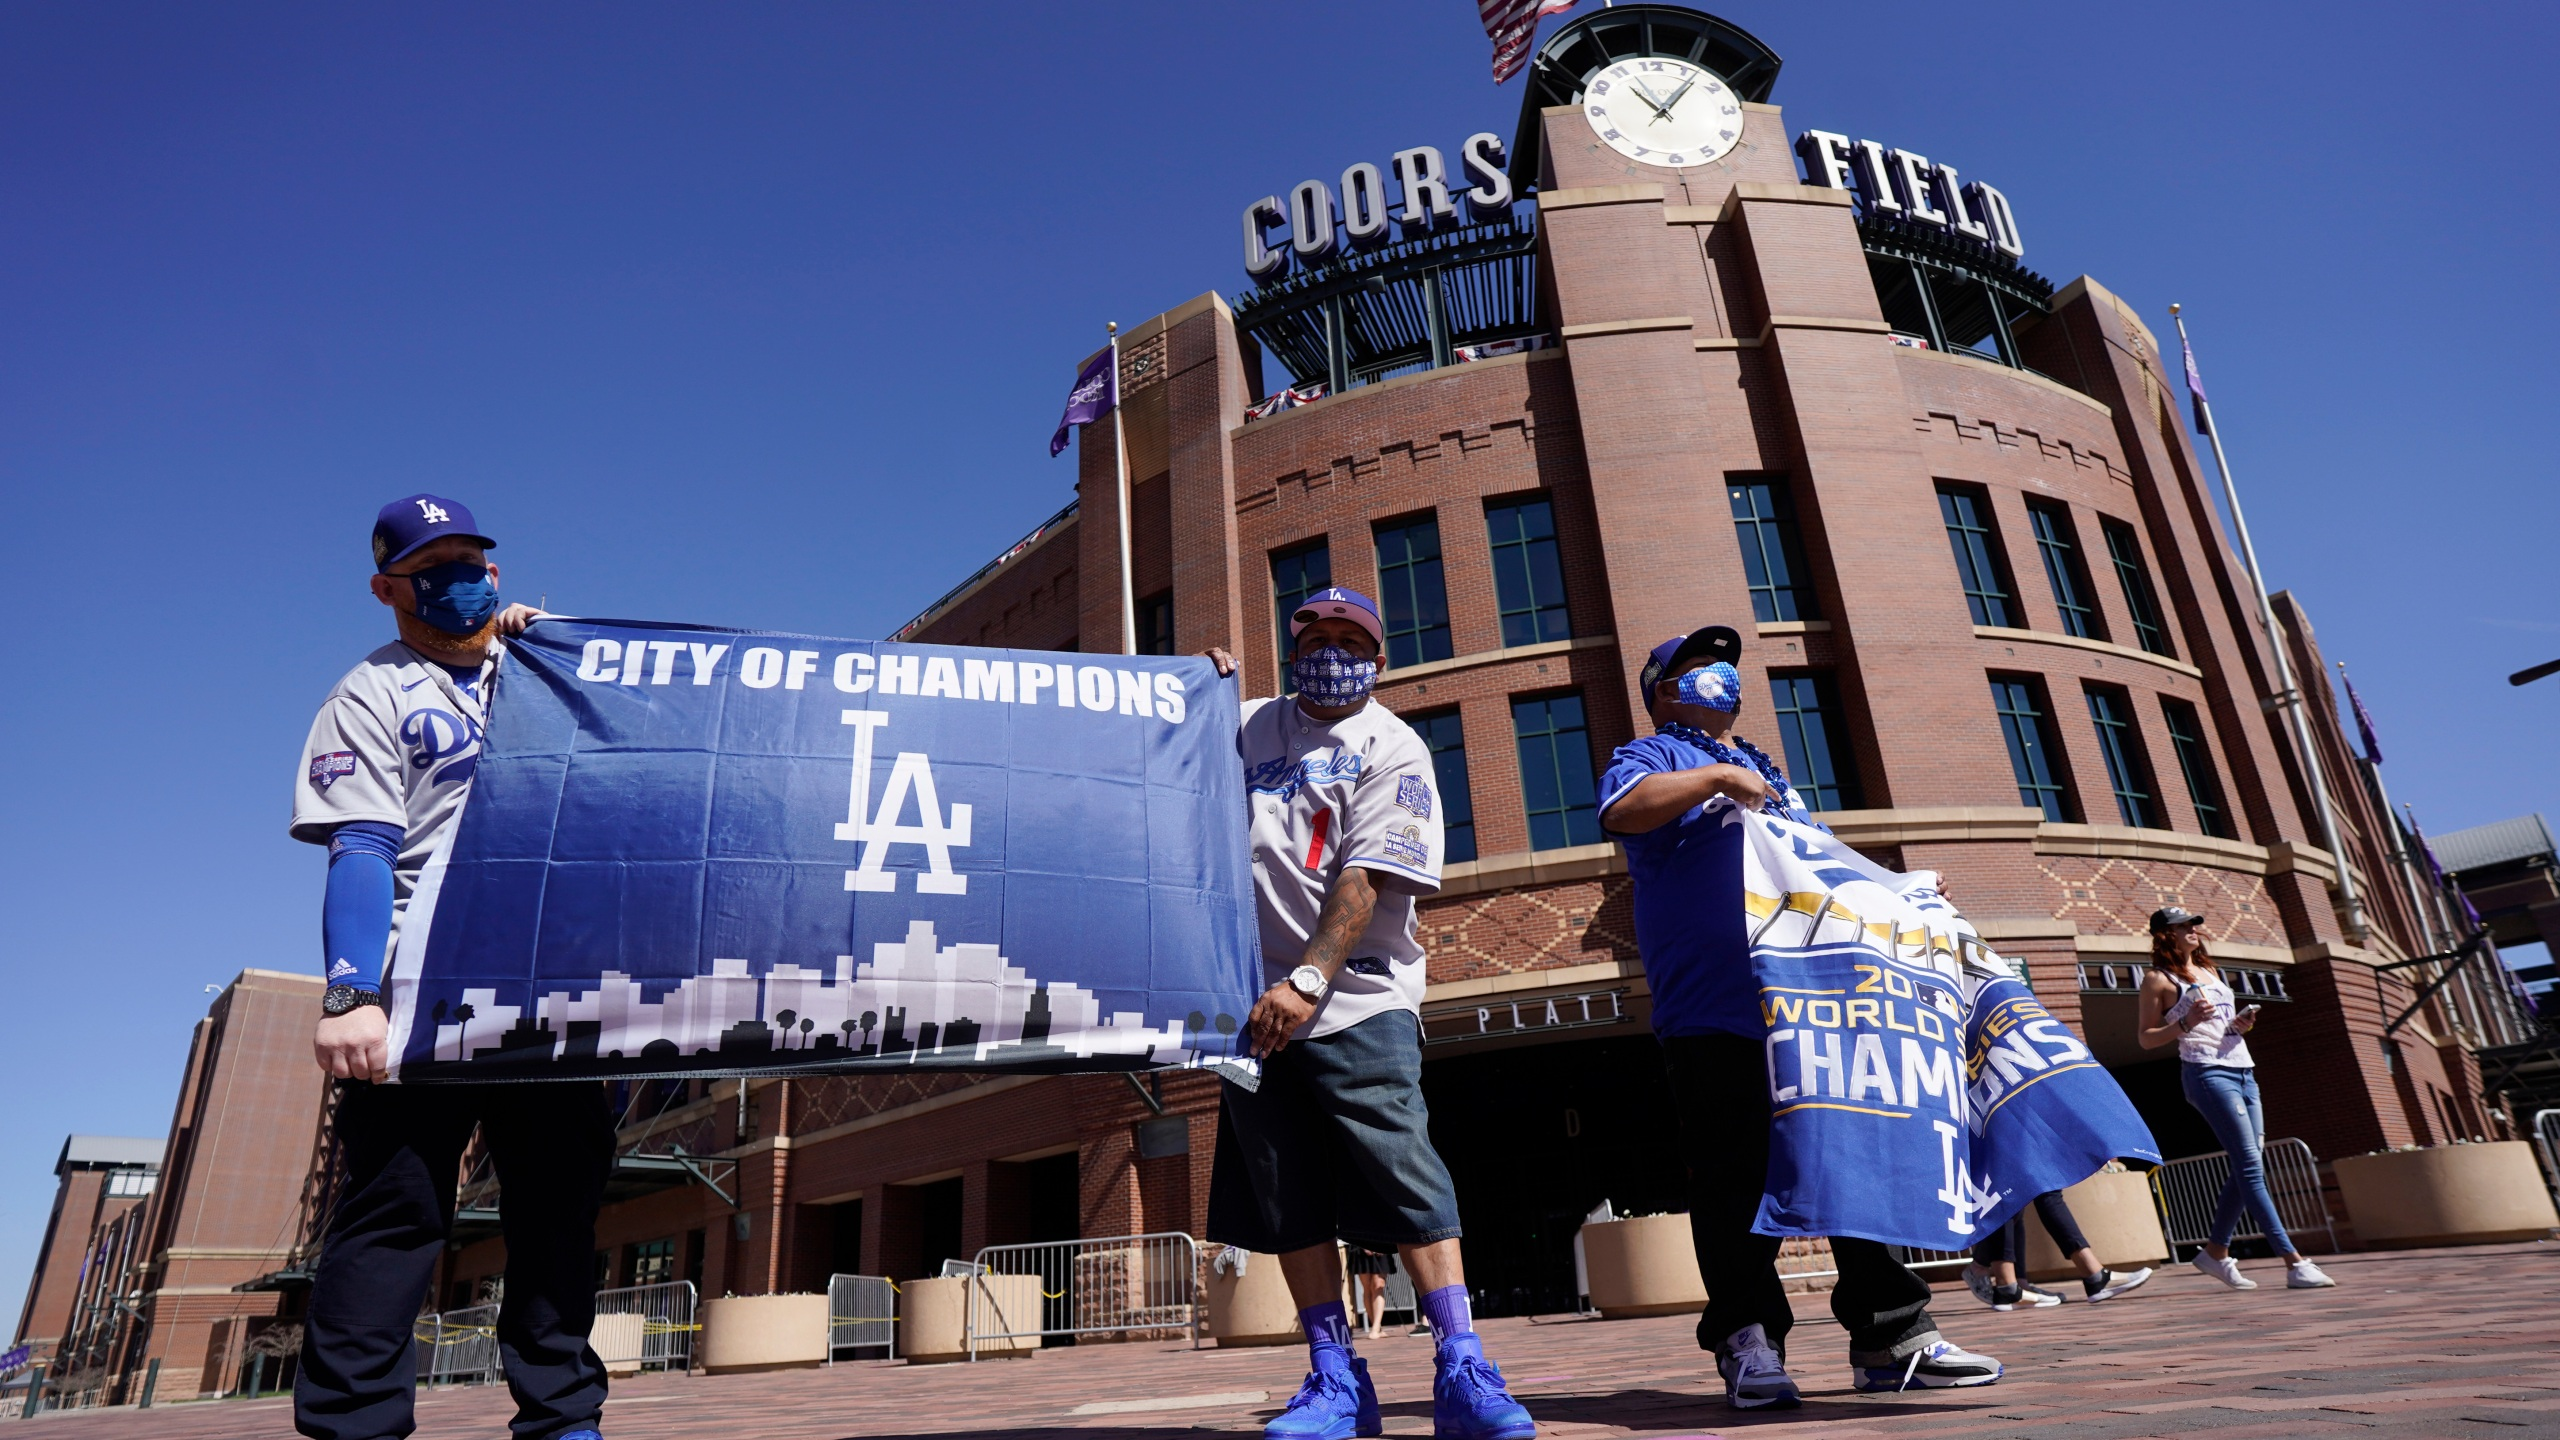 Los Angeles Dodgers fans Oliver Olson, left, of San Diego, Juan Campo and Rudy Soto, both of Los Angeles, hold up flags outside the main entrance to Coors Field in Denver as fans return for the first inning of a baseball game between the Dodgers and Colorado Rockies on April 1, 2021. (David Zalubowski / Associated Press)